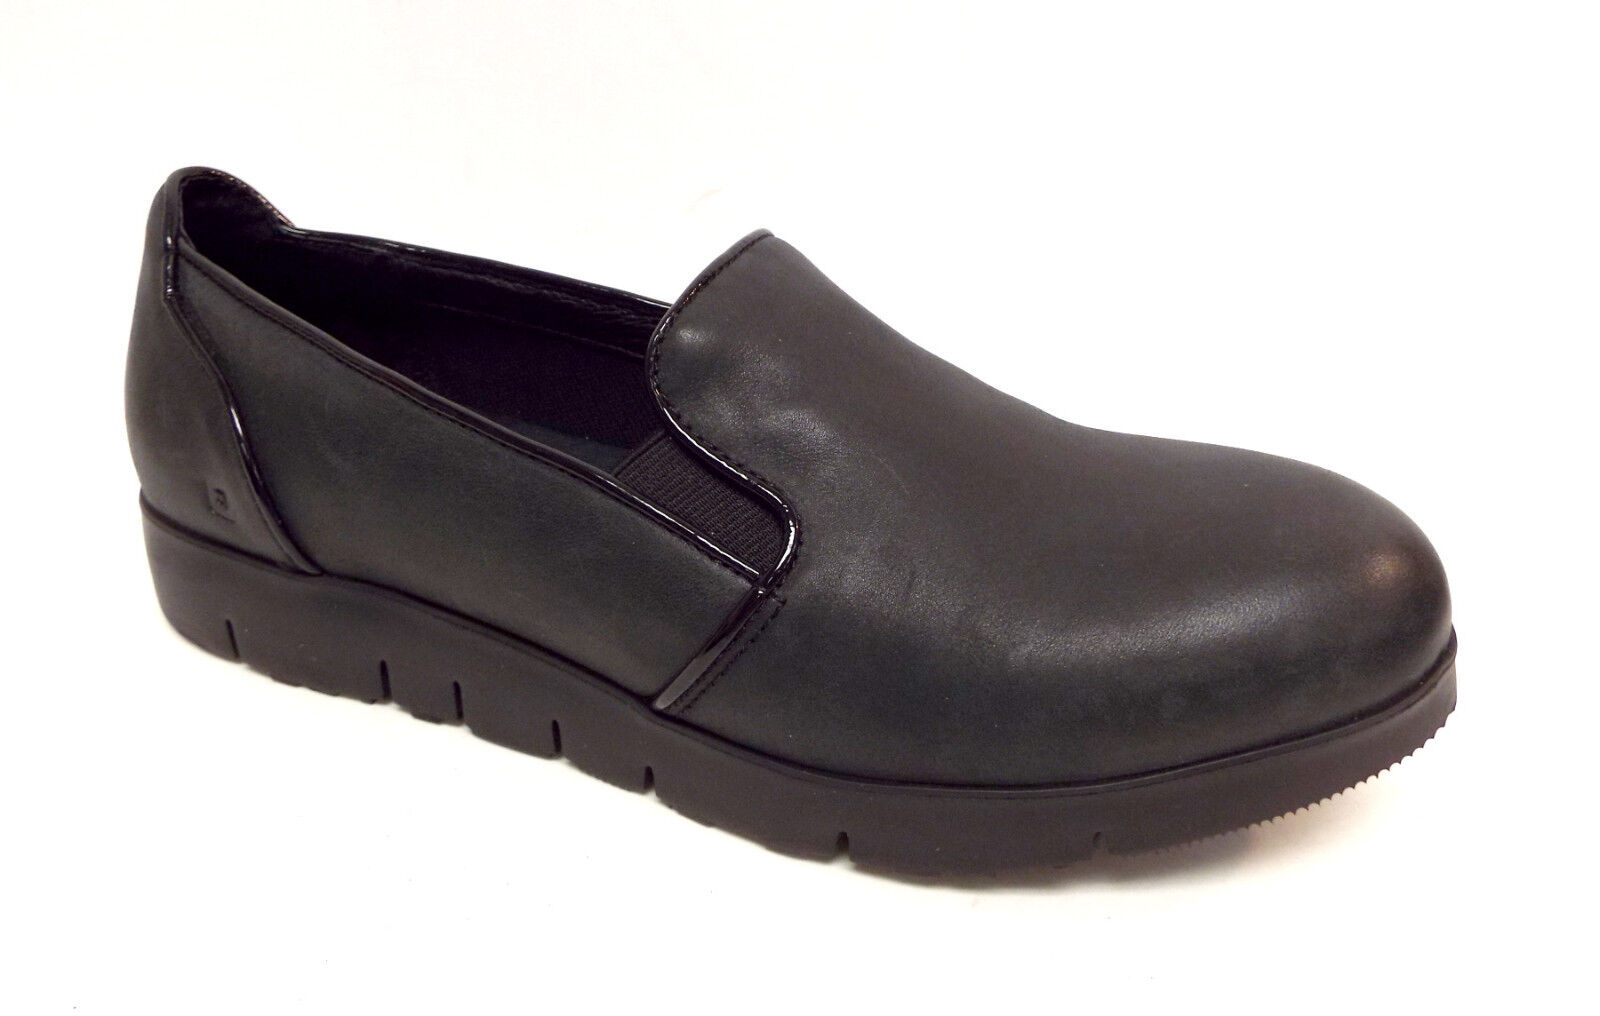 New TSUBO Size 10 EBONEE Black Leather Loafers Shoes